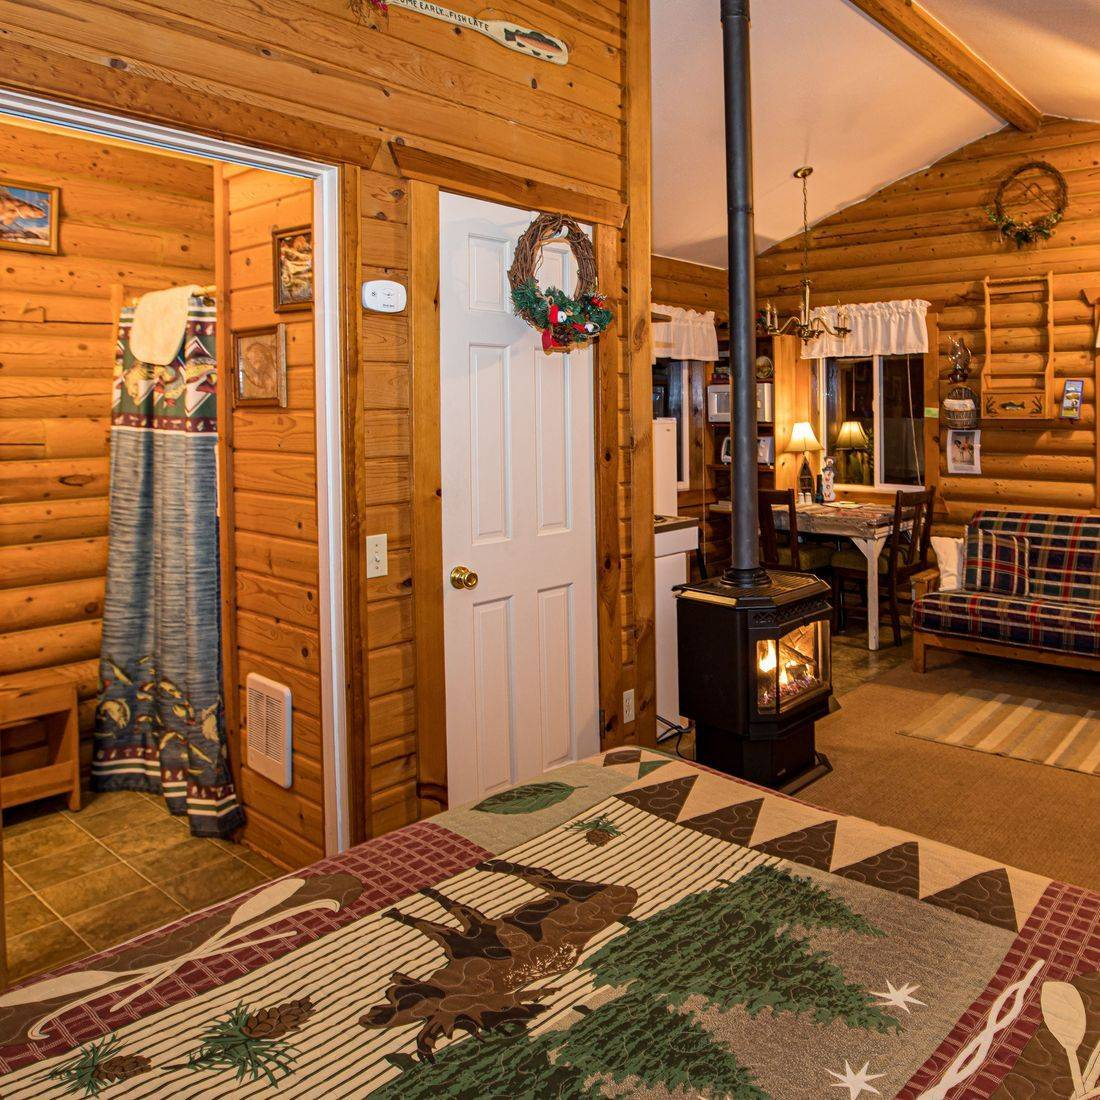 Log cabins, lodging, hotels, North Cascades